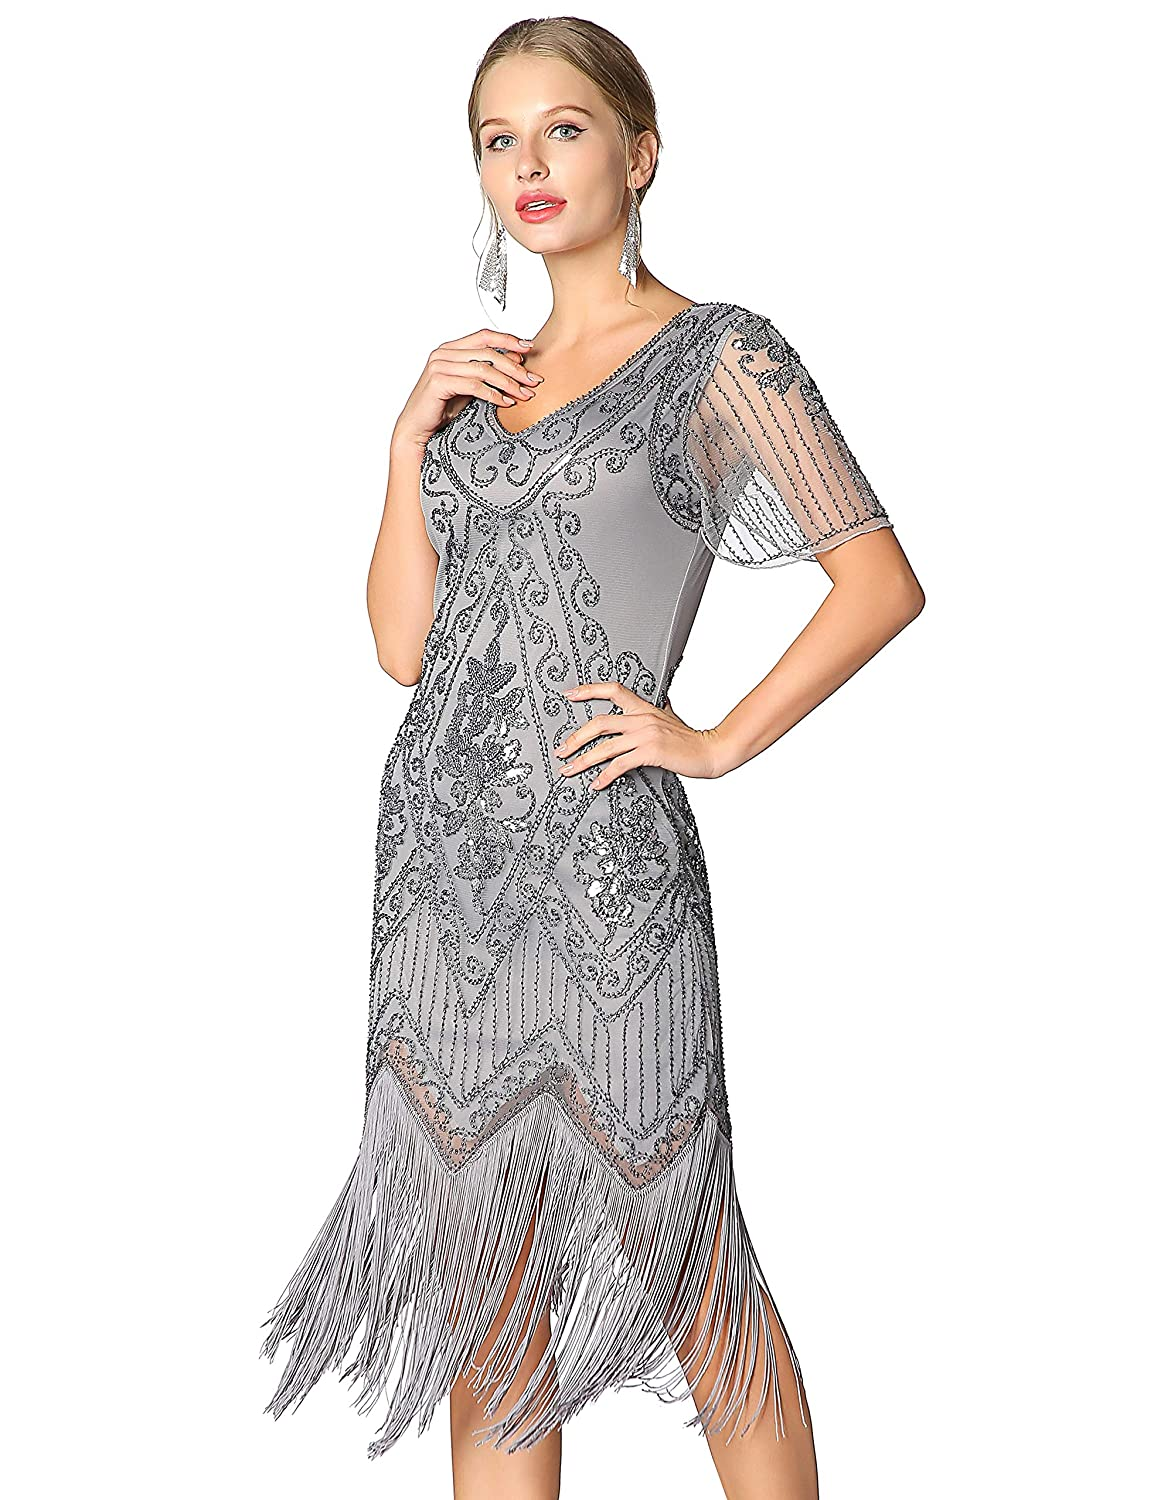 1920s Costumes: Flapper, Great Gatsby, Gangster Girl Metme Womens Roaring 1920s Gatsby Dresses Short Sleeve Dress Cocktail Flapper Dress $50.99 AT vintagedancer.com